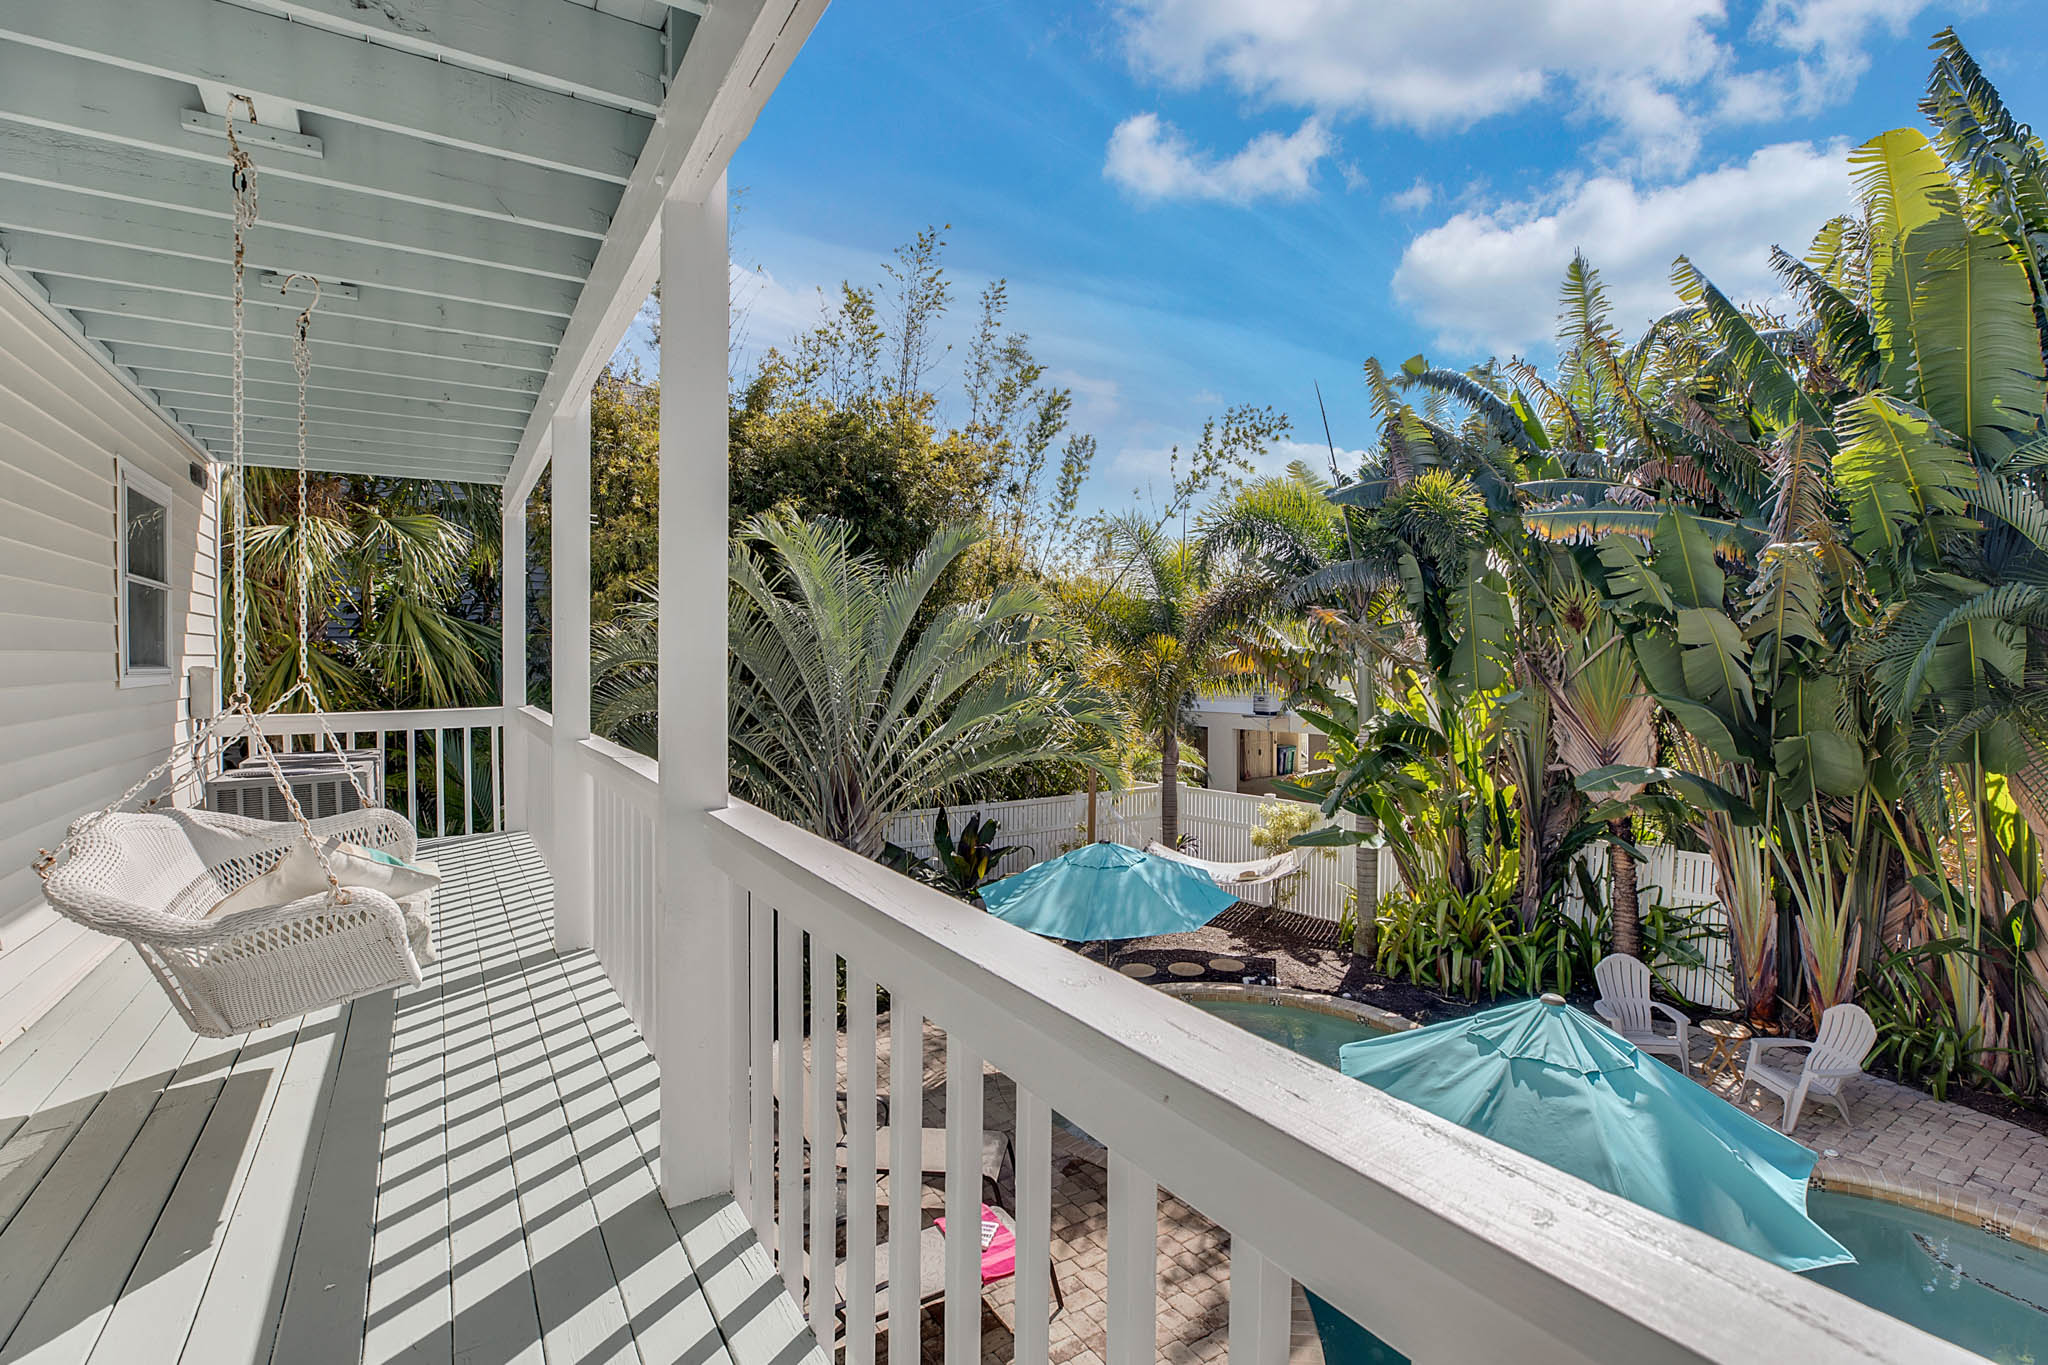 403-N-Bay-Blvd.-Anna-Maria--FL-34216--18--2nd-Floor-Rear-Deck-1---1.jpg